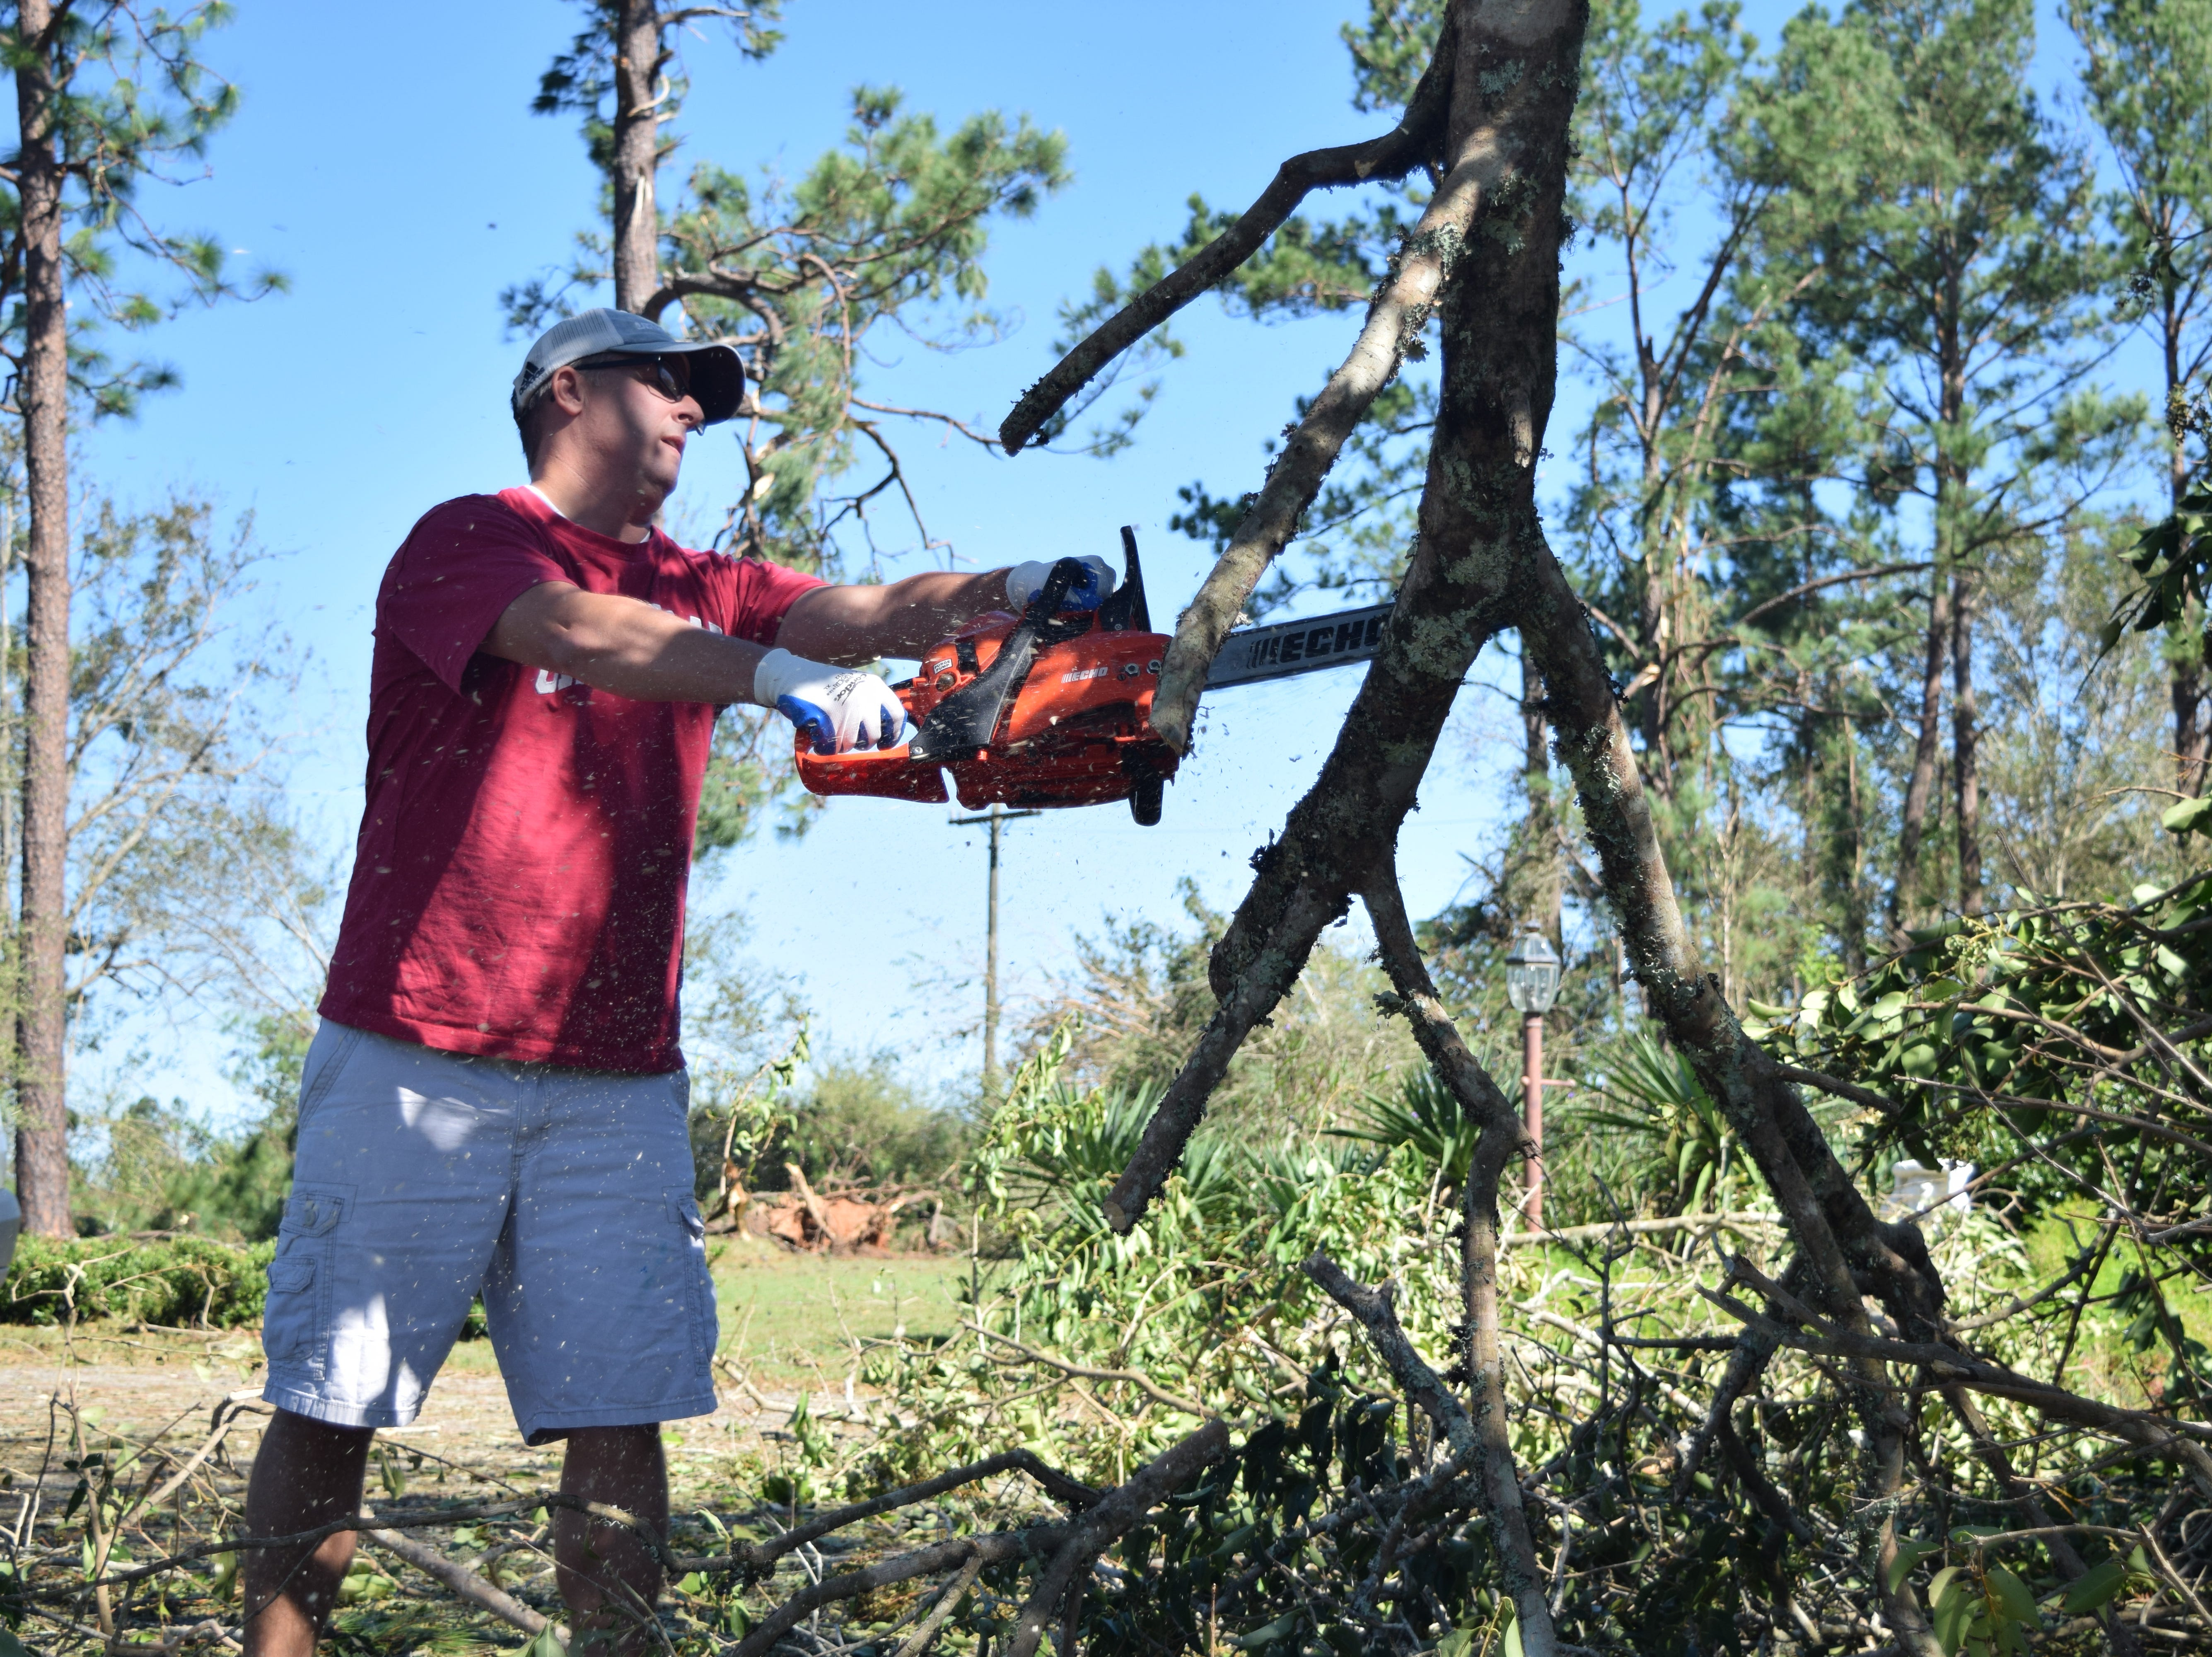 Trey Homan, a volunteer with Mormon Helping Hands, cuts up a tree at a house in Quincy after Hurricane Michael.